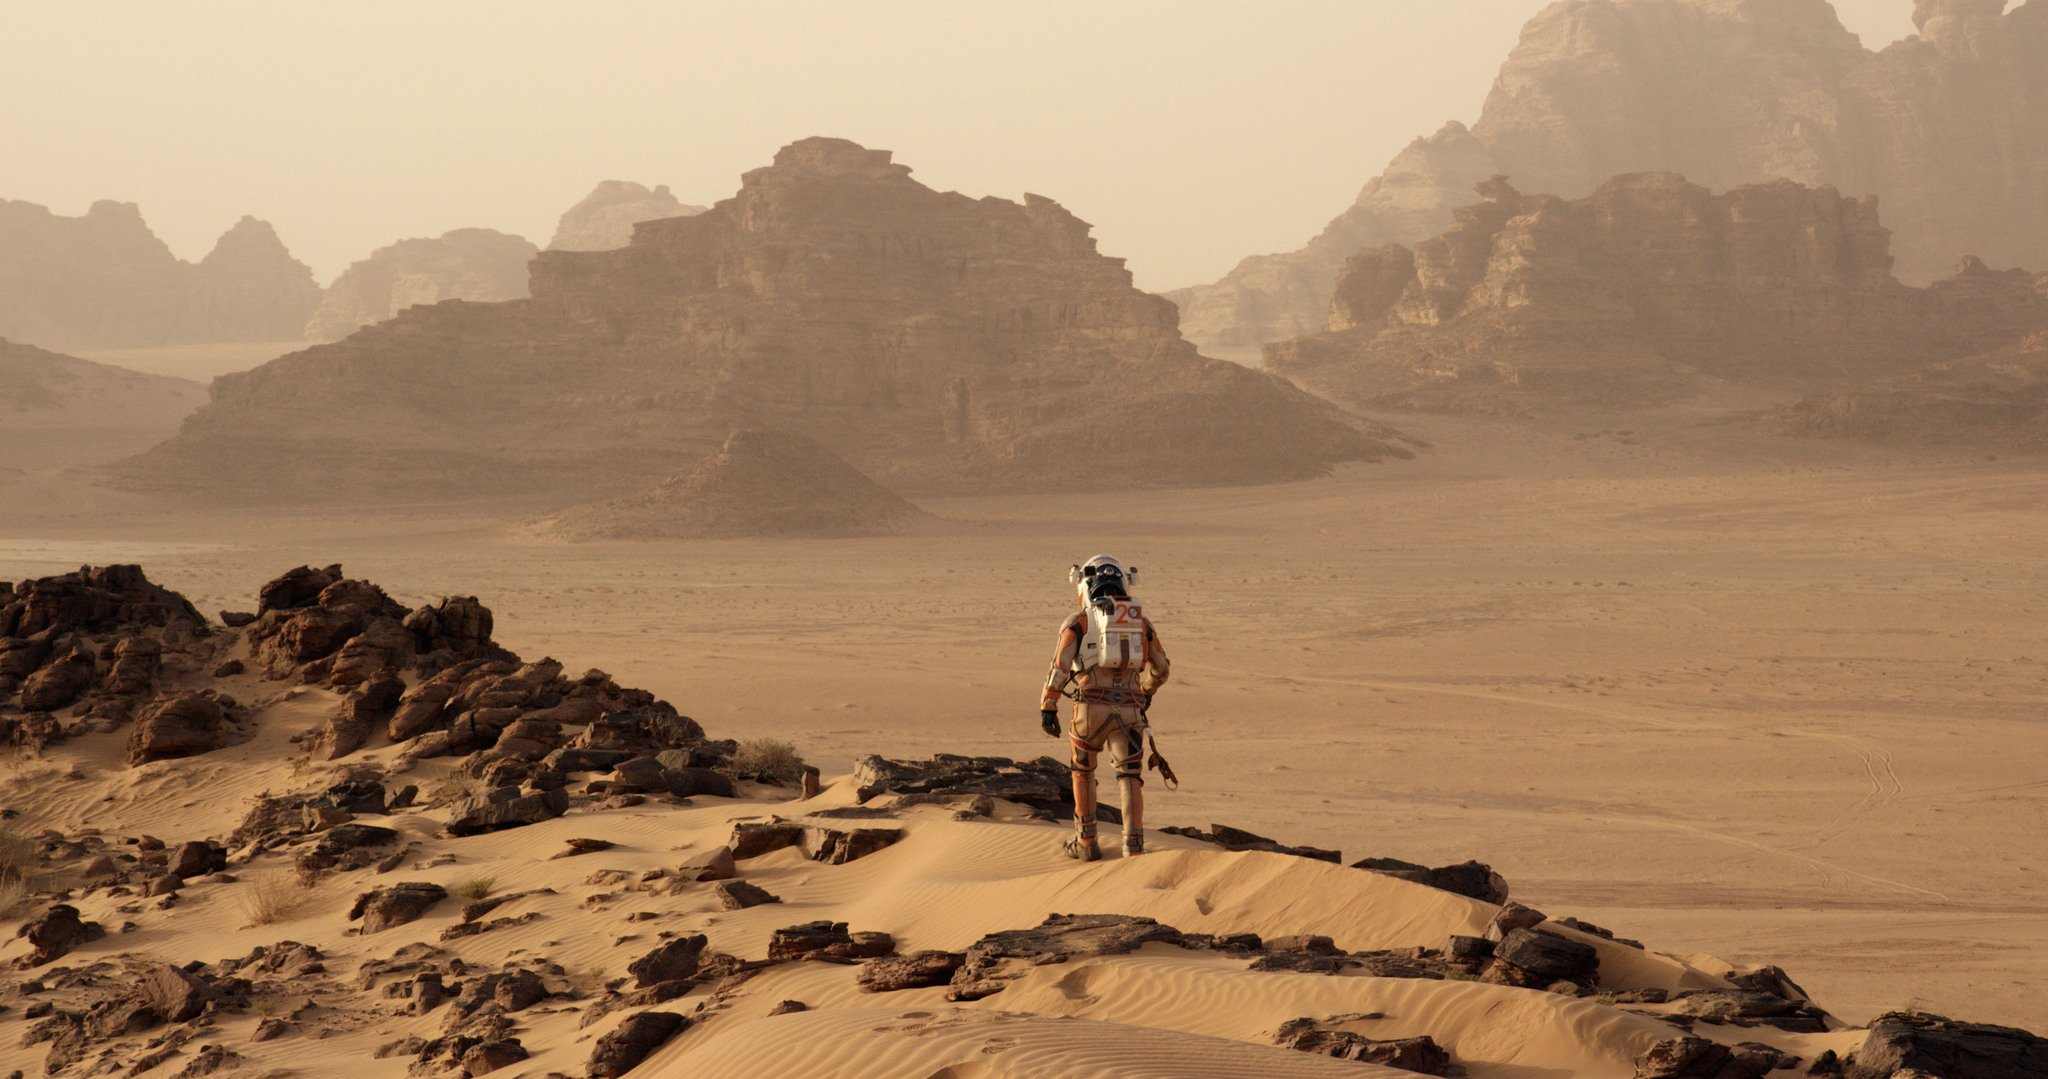 This isn't Edgar Rice Burroughs' Mars—no bazaars or Martian princesses. Just an empty, depthless waste of dirt and rock.